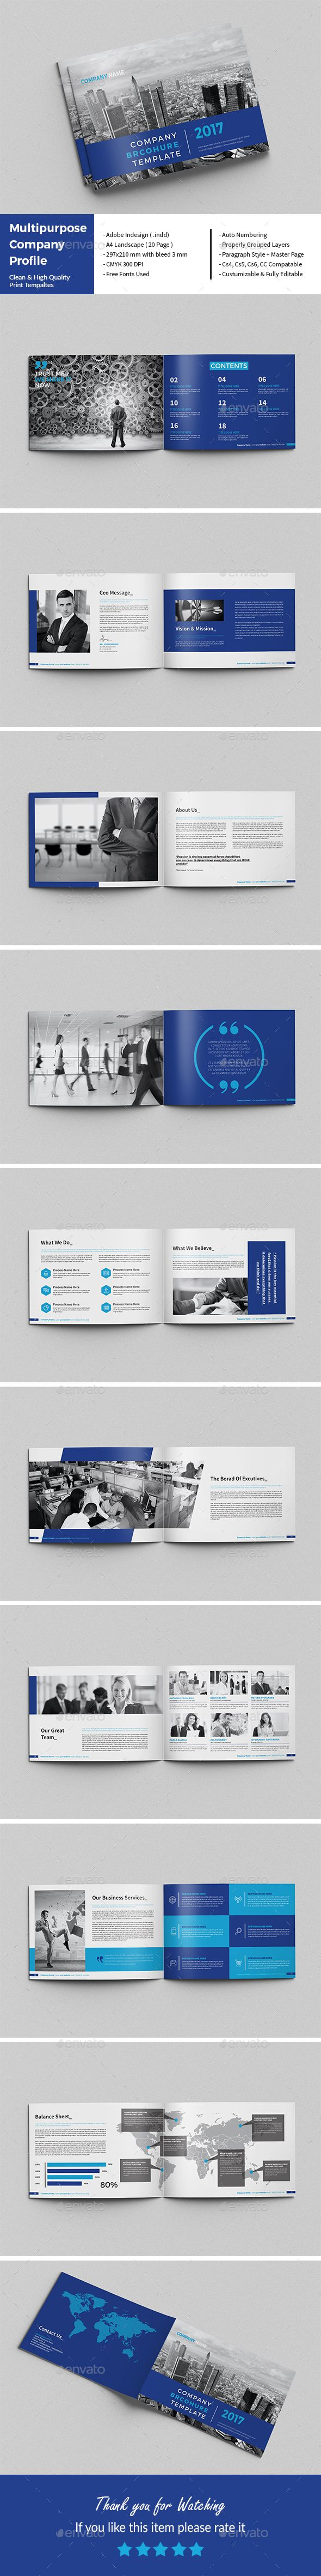 Multipurpose Company Profile | Revistas, Editorial y Diseño editorial